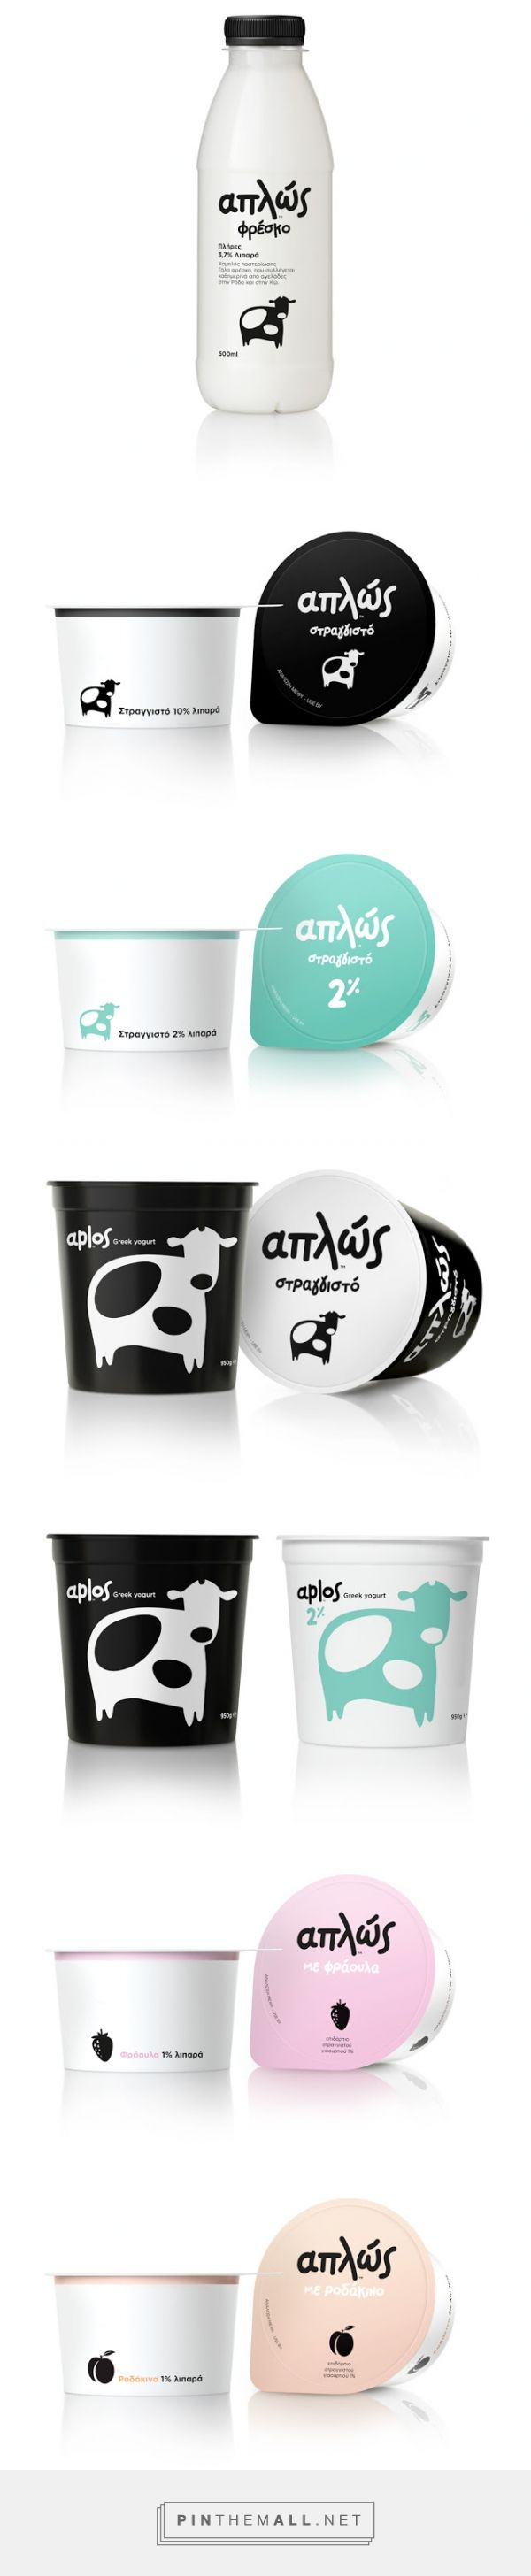 Aplos #dairy product #packaging designed by mousegraphics PD